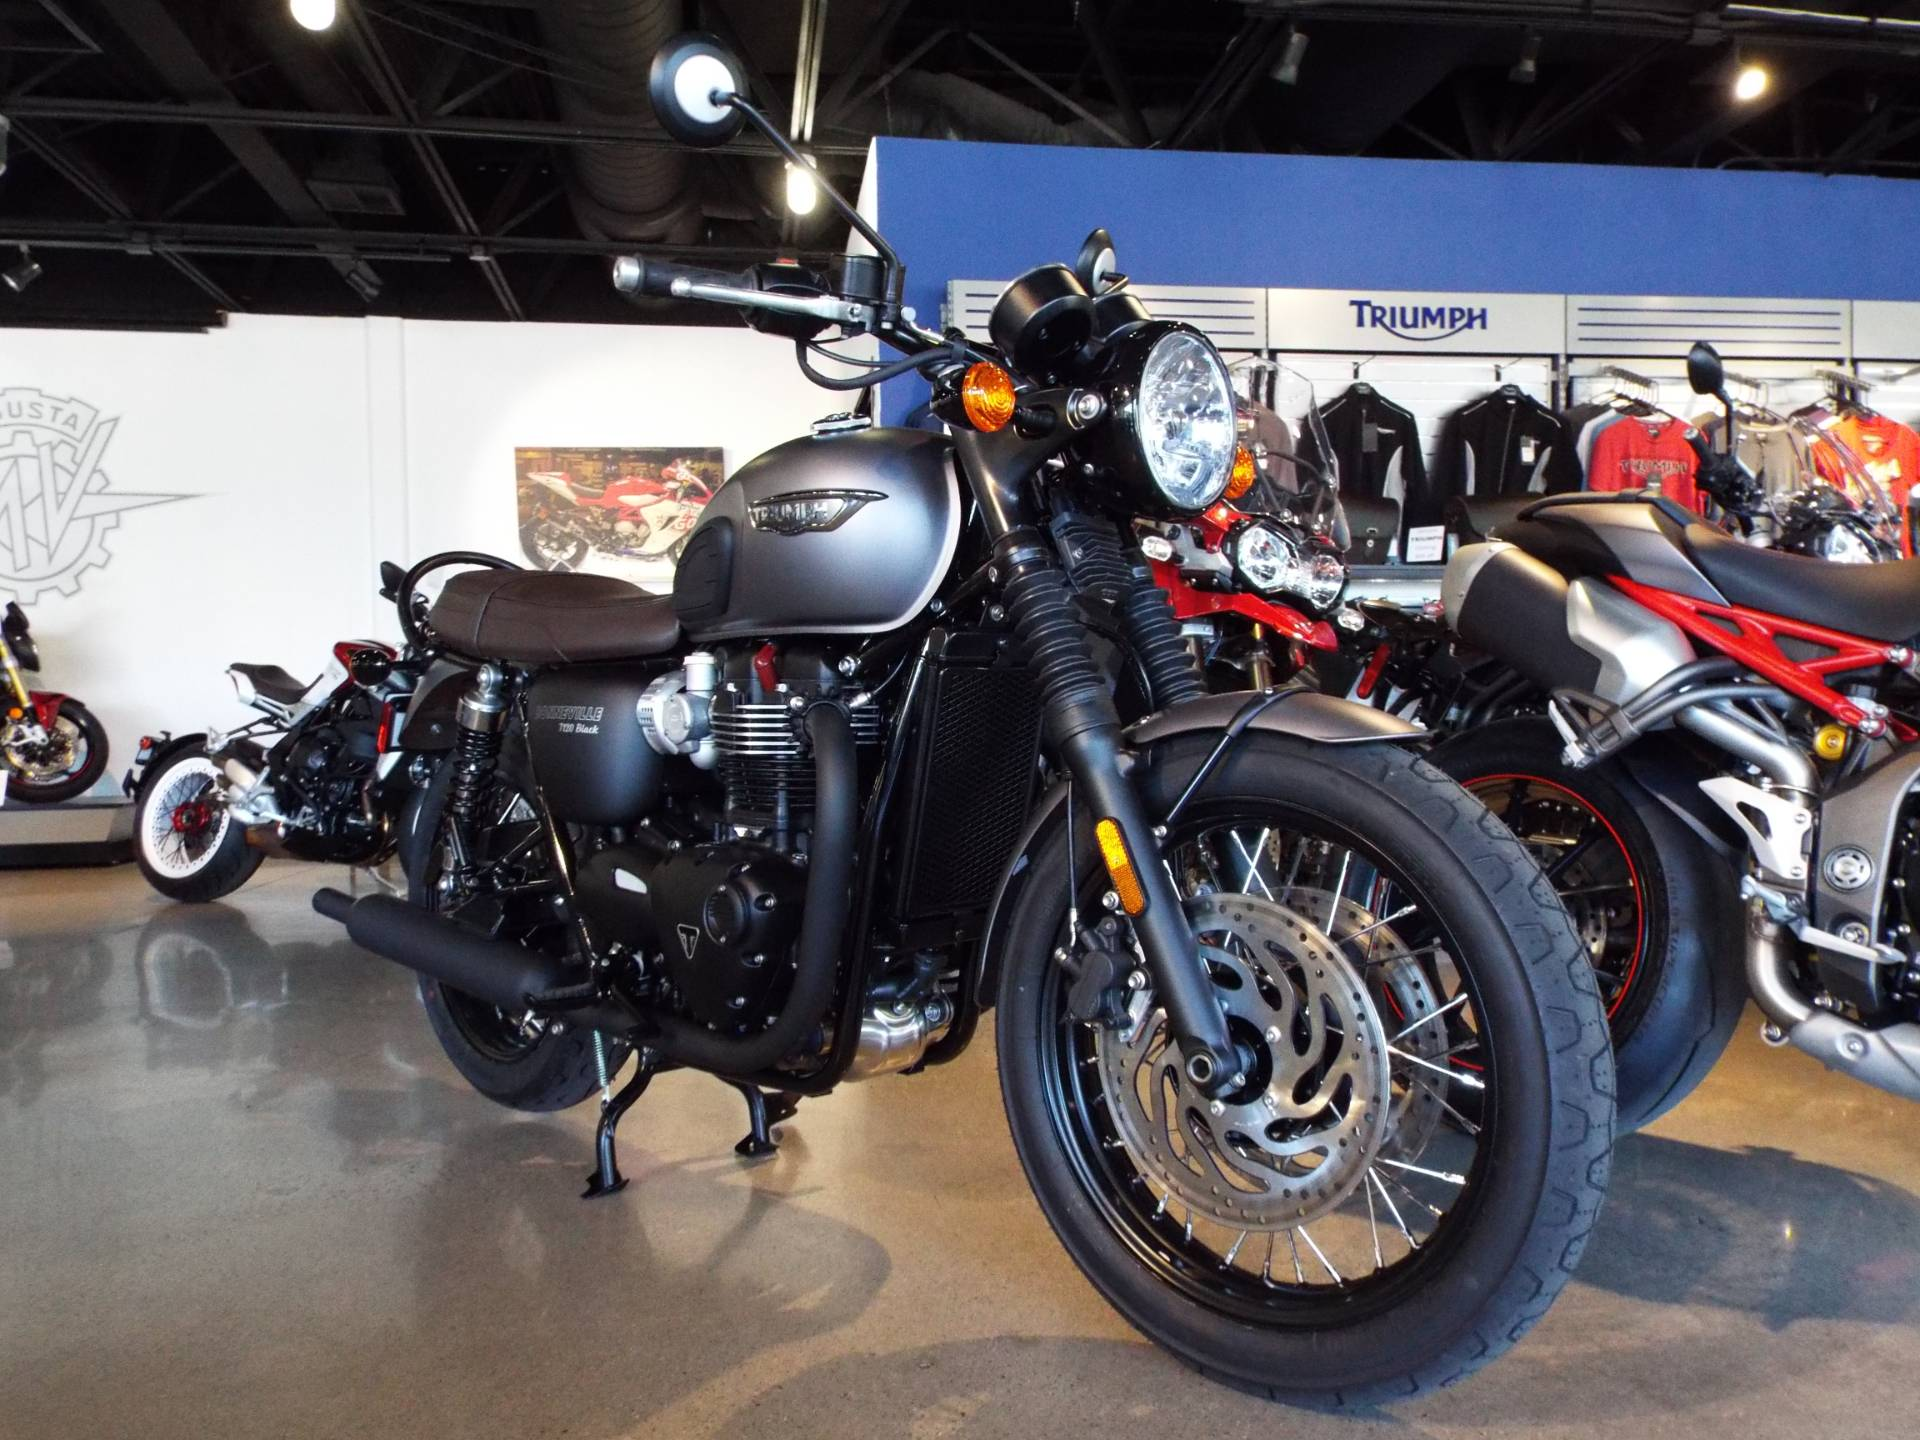 2017 Triumph Bonneville T120 Black in San Bernardino, California